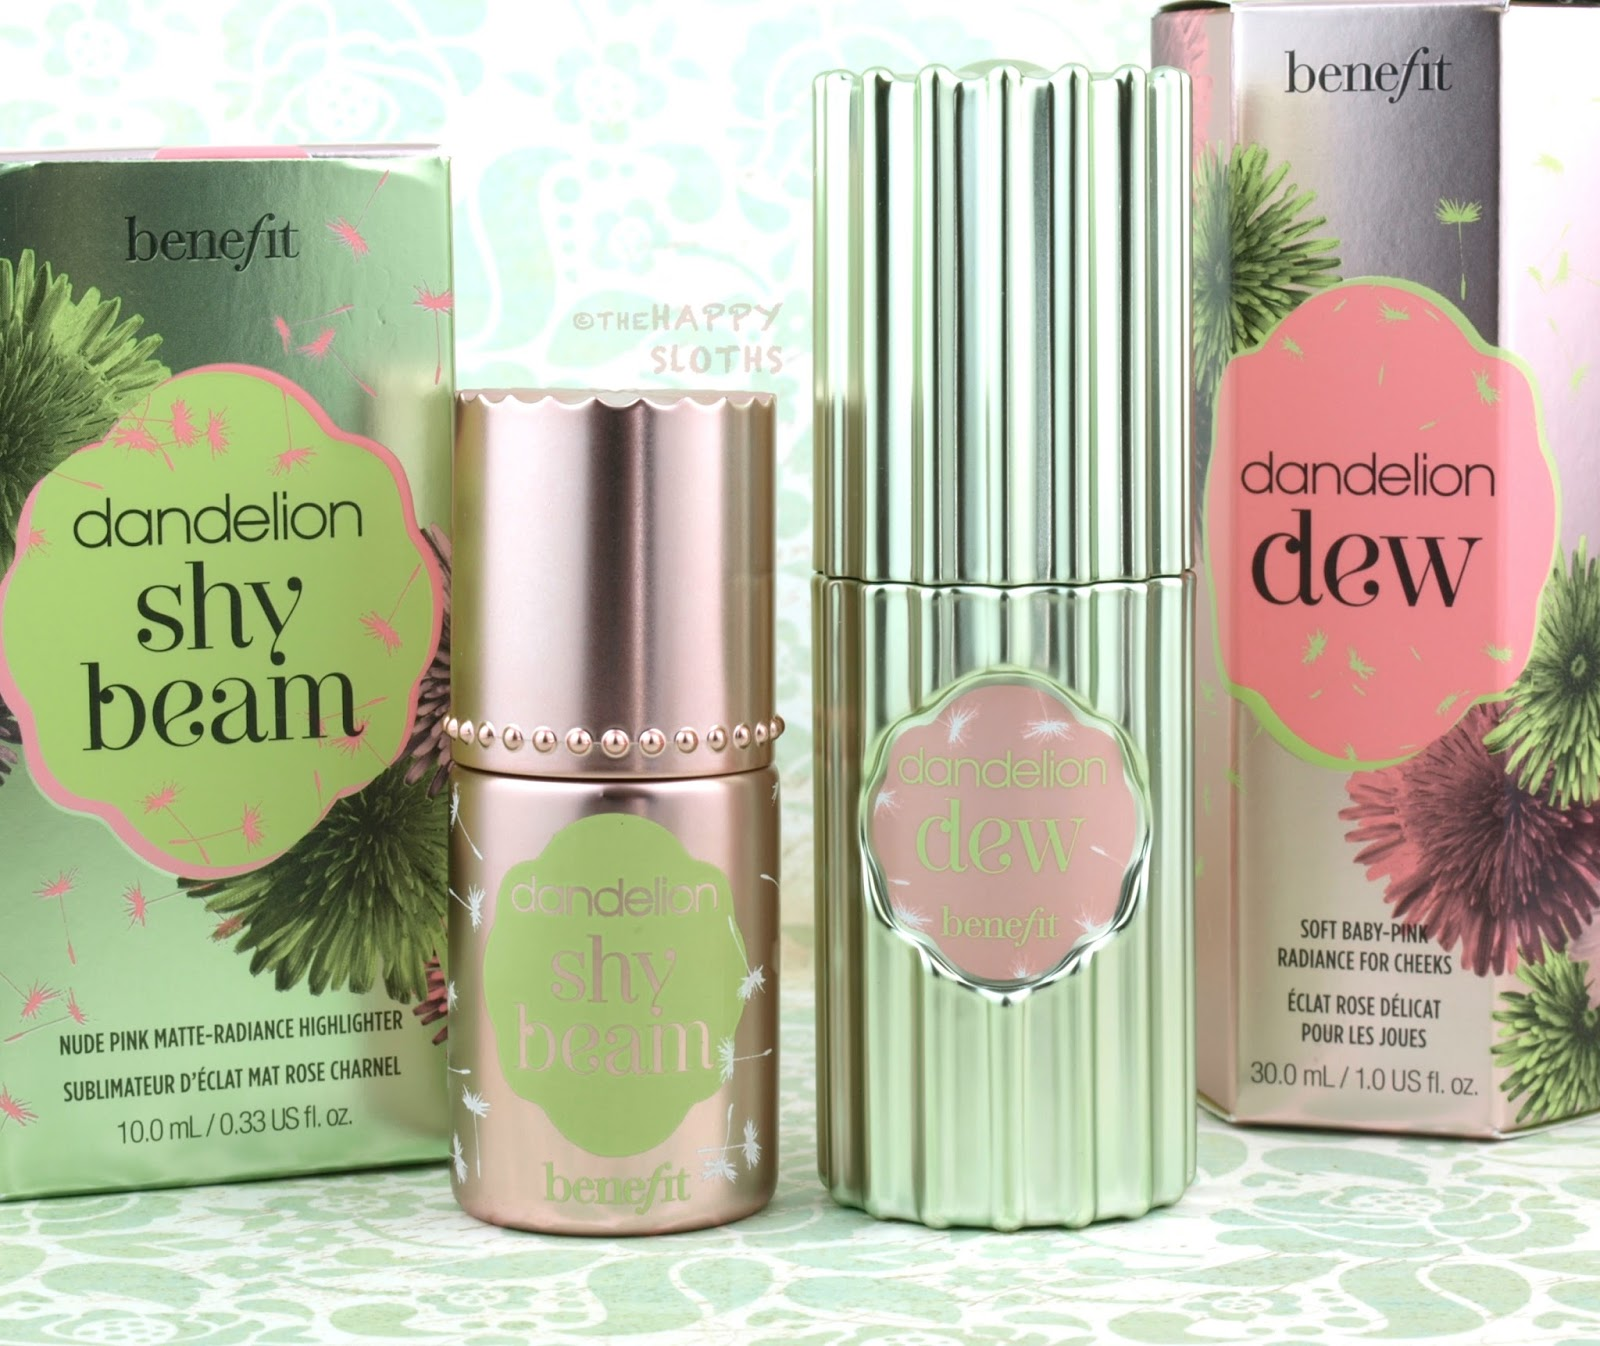 Benefit Dandelion Dew Amp Shy Beam Review And Swatches